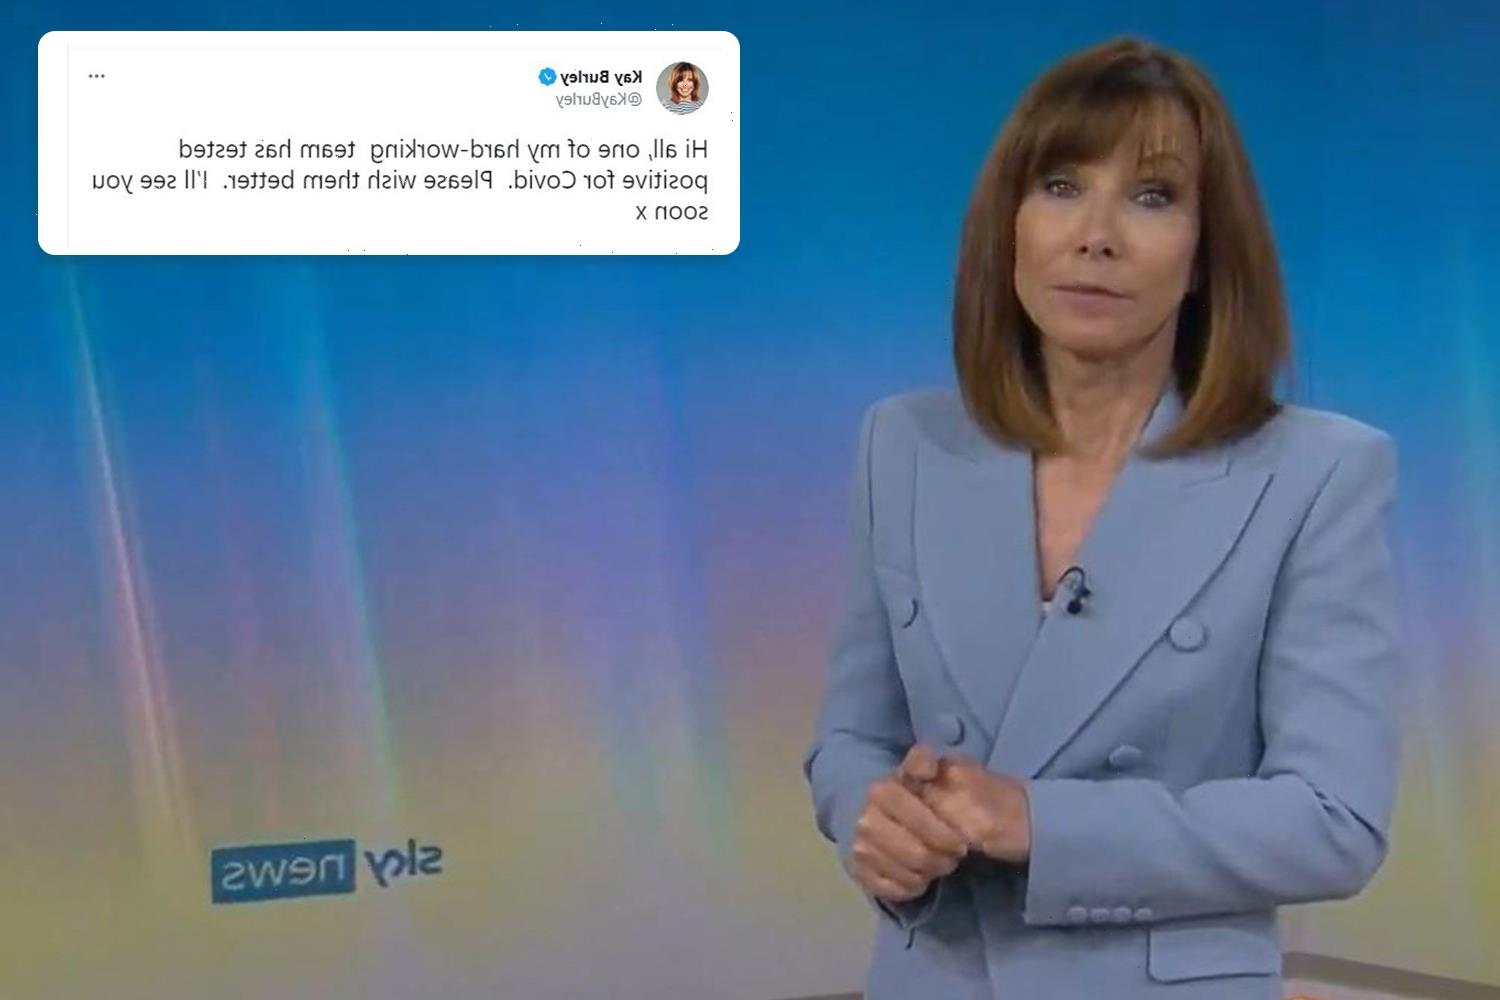 Kay Burley hints she'll be off air again just two days after return to Sky News after suspension for lockdown rule break